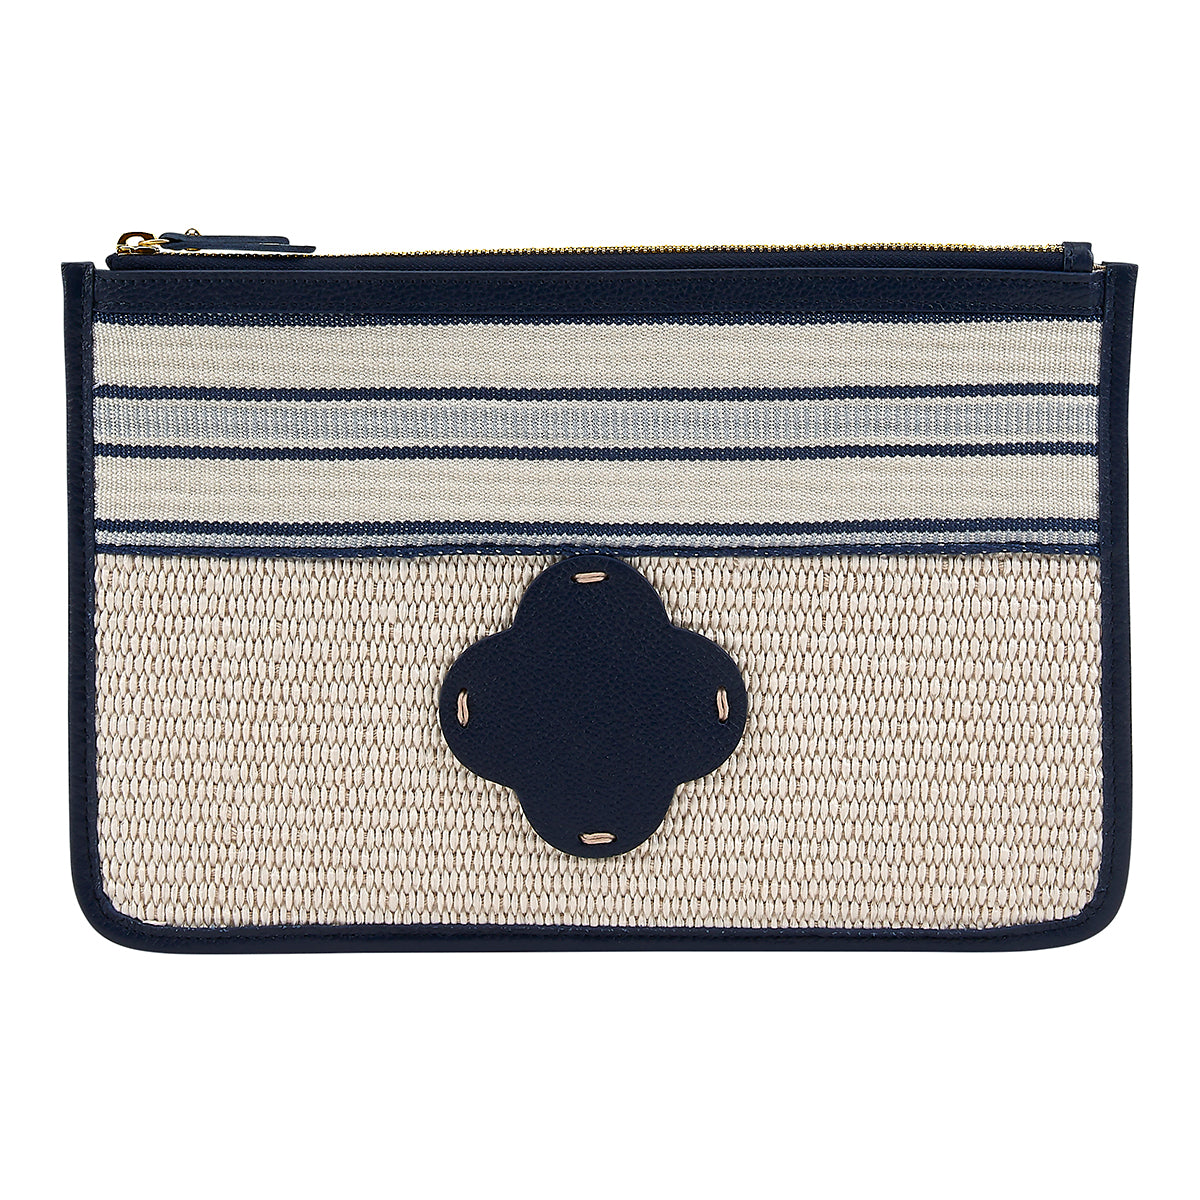 Nantucket Clutch Navy